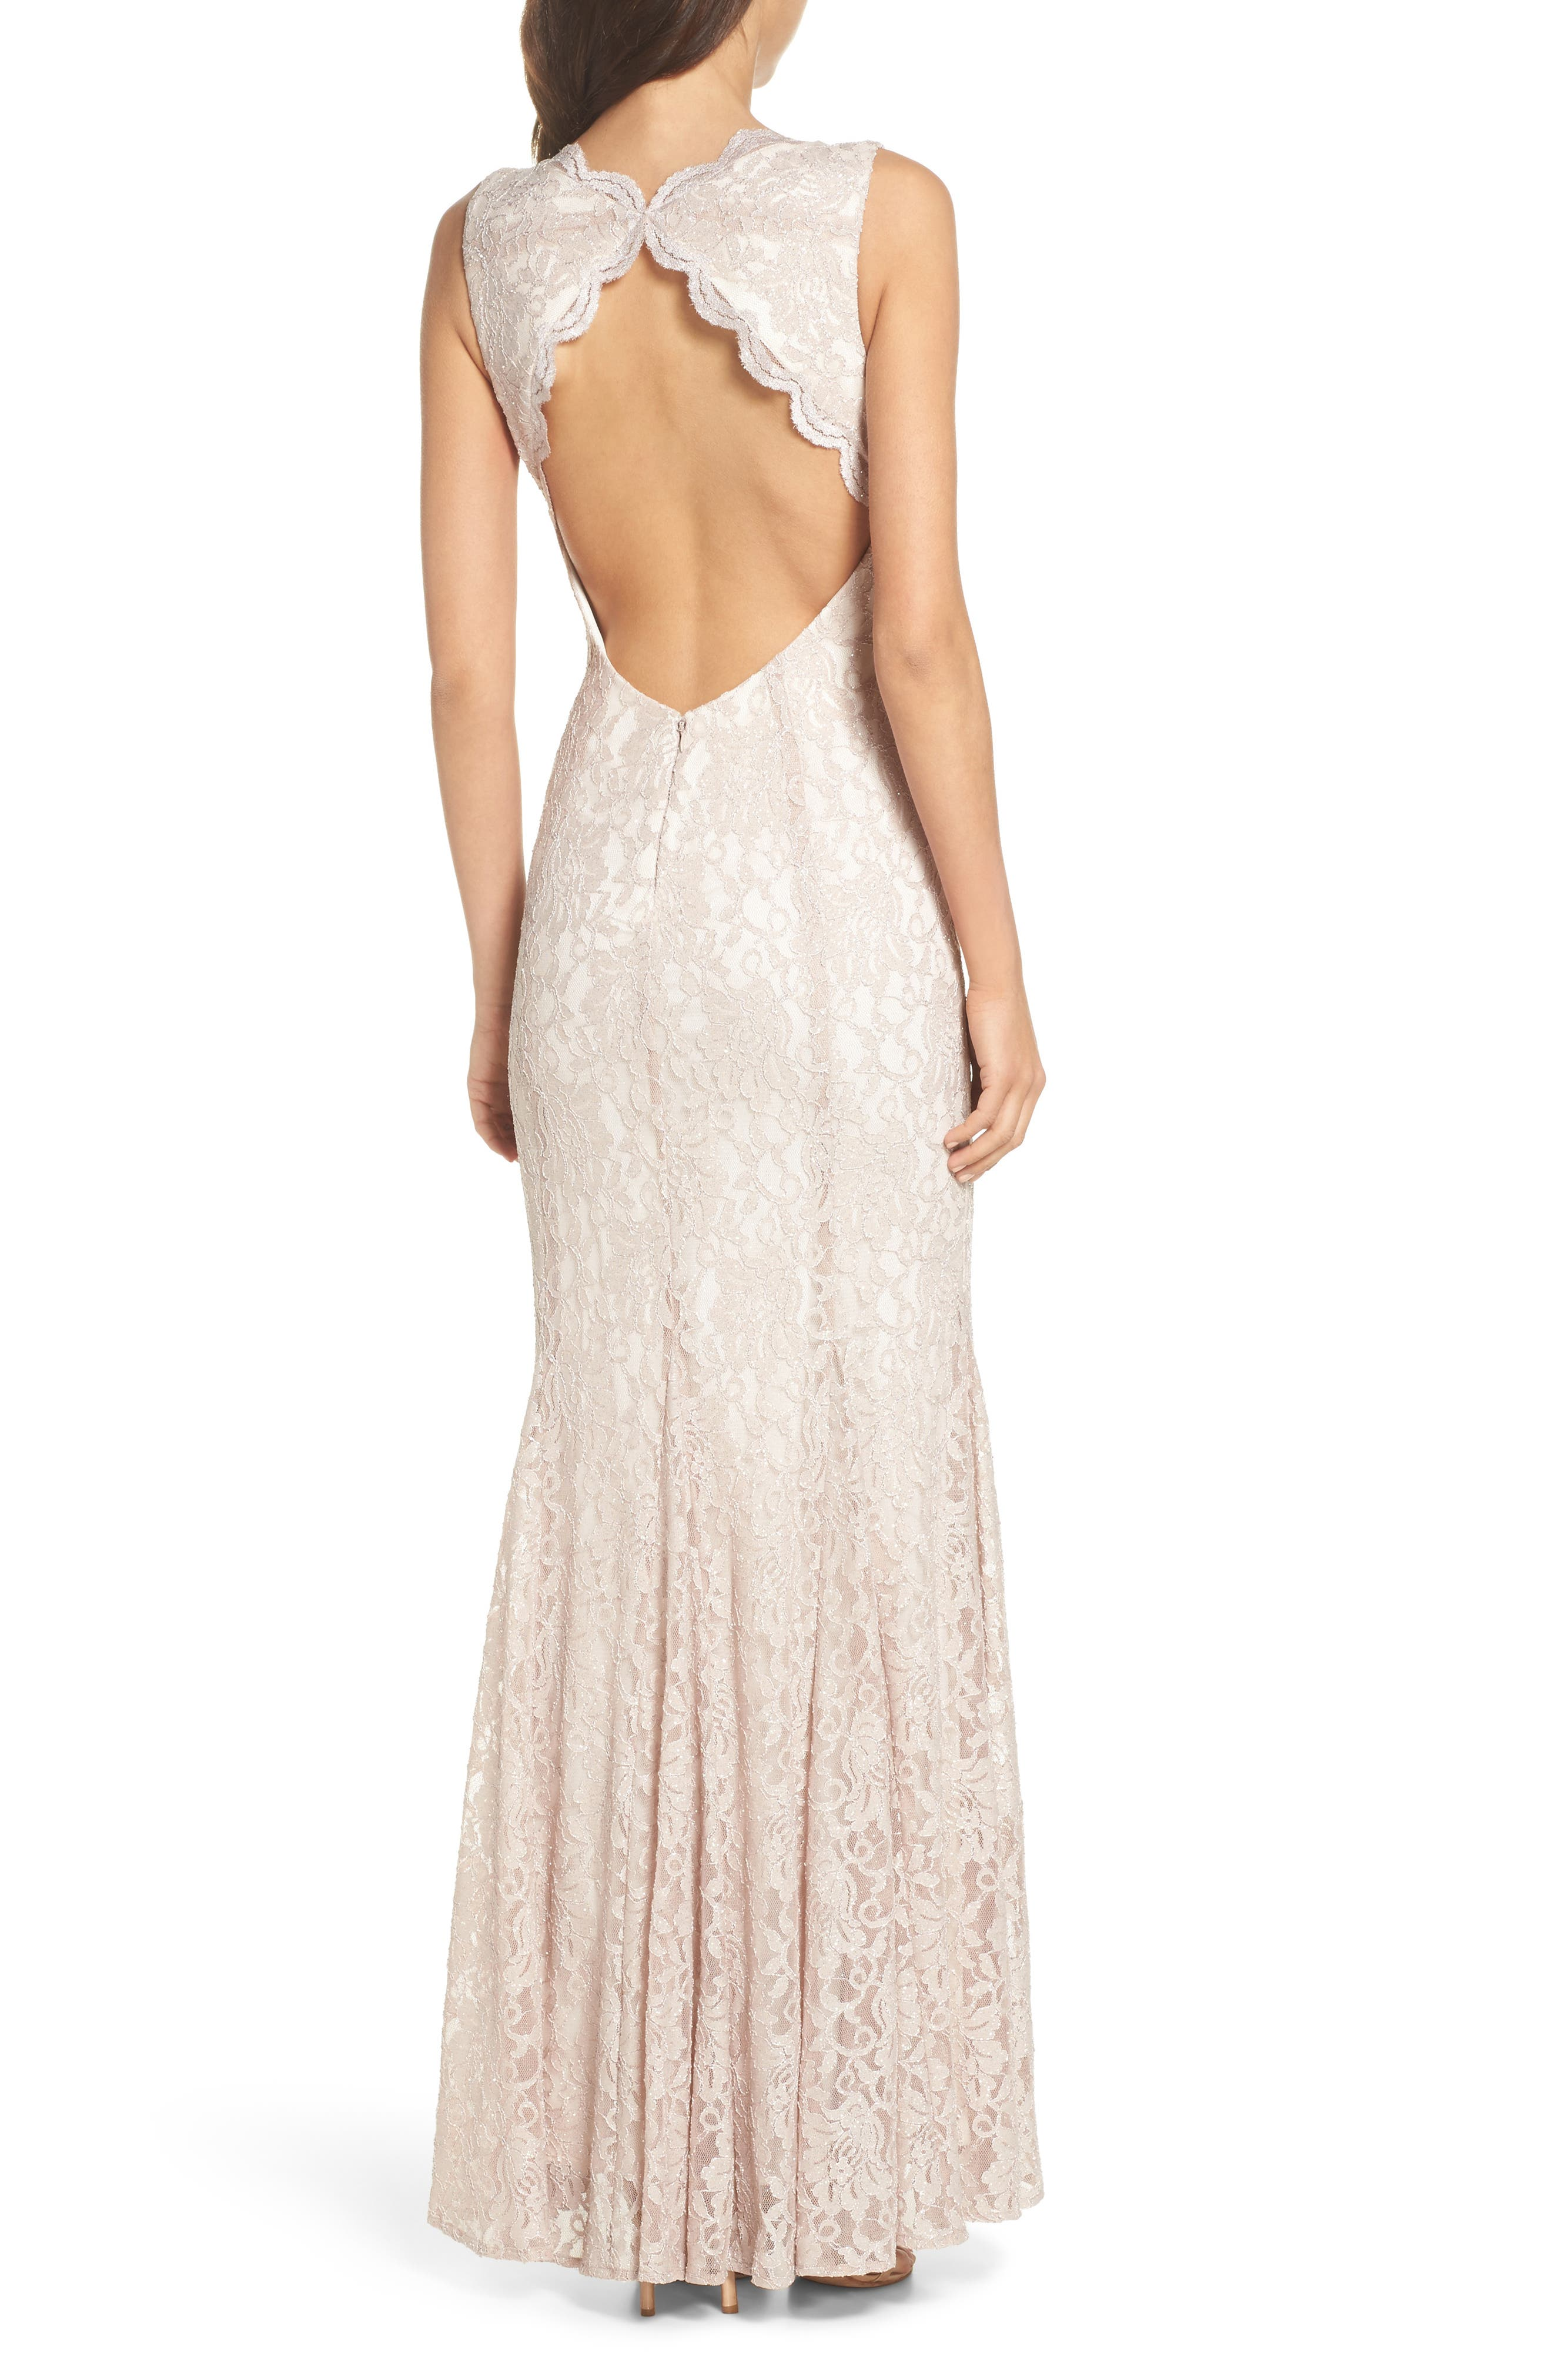 MORGAN & CO., Glitter Lace Trumpet Dress, Alternate thumbnail 2, color, CHAMPAGNE / IVORY